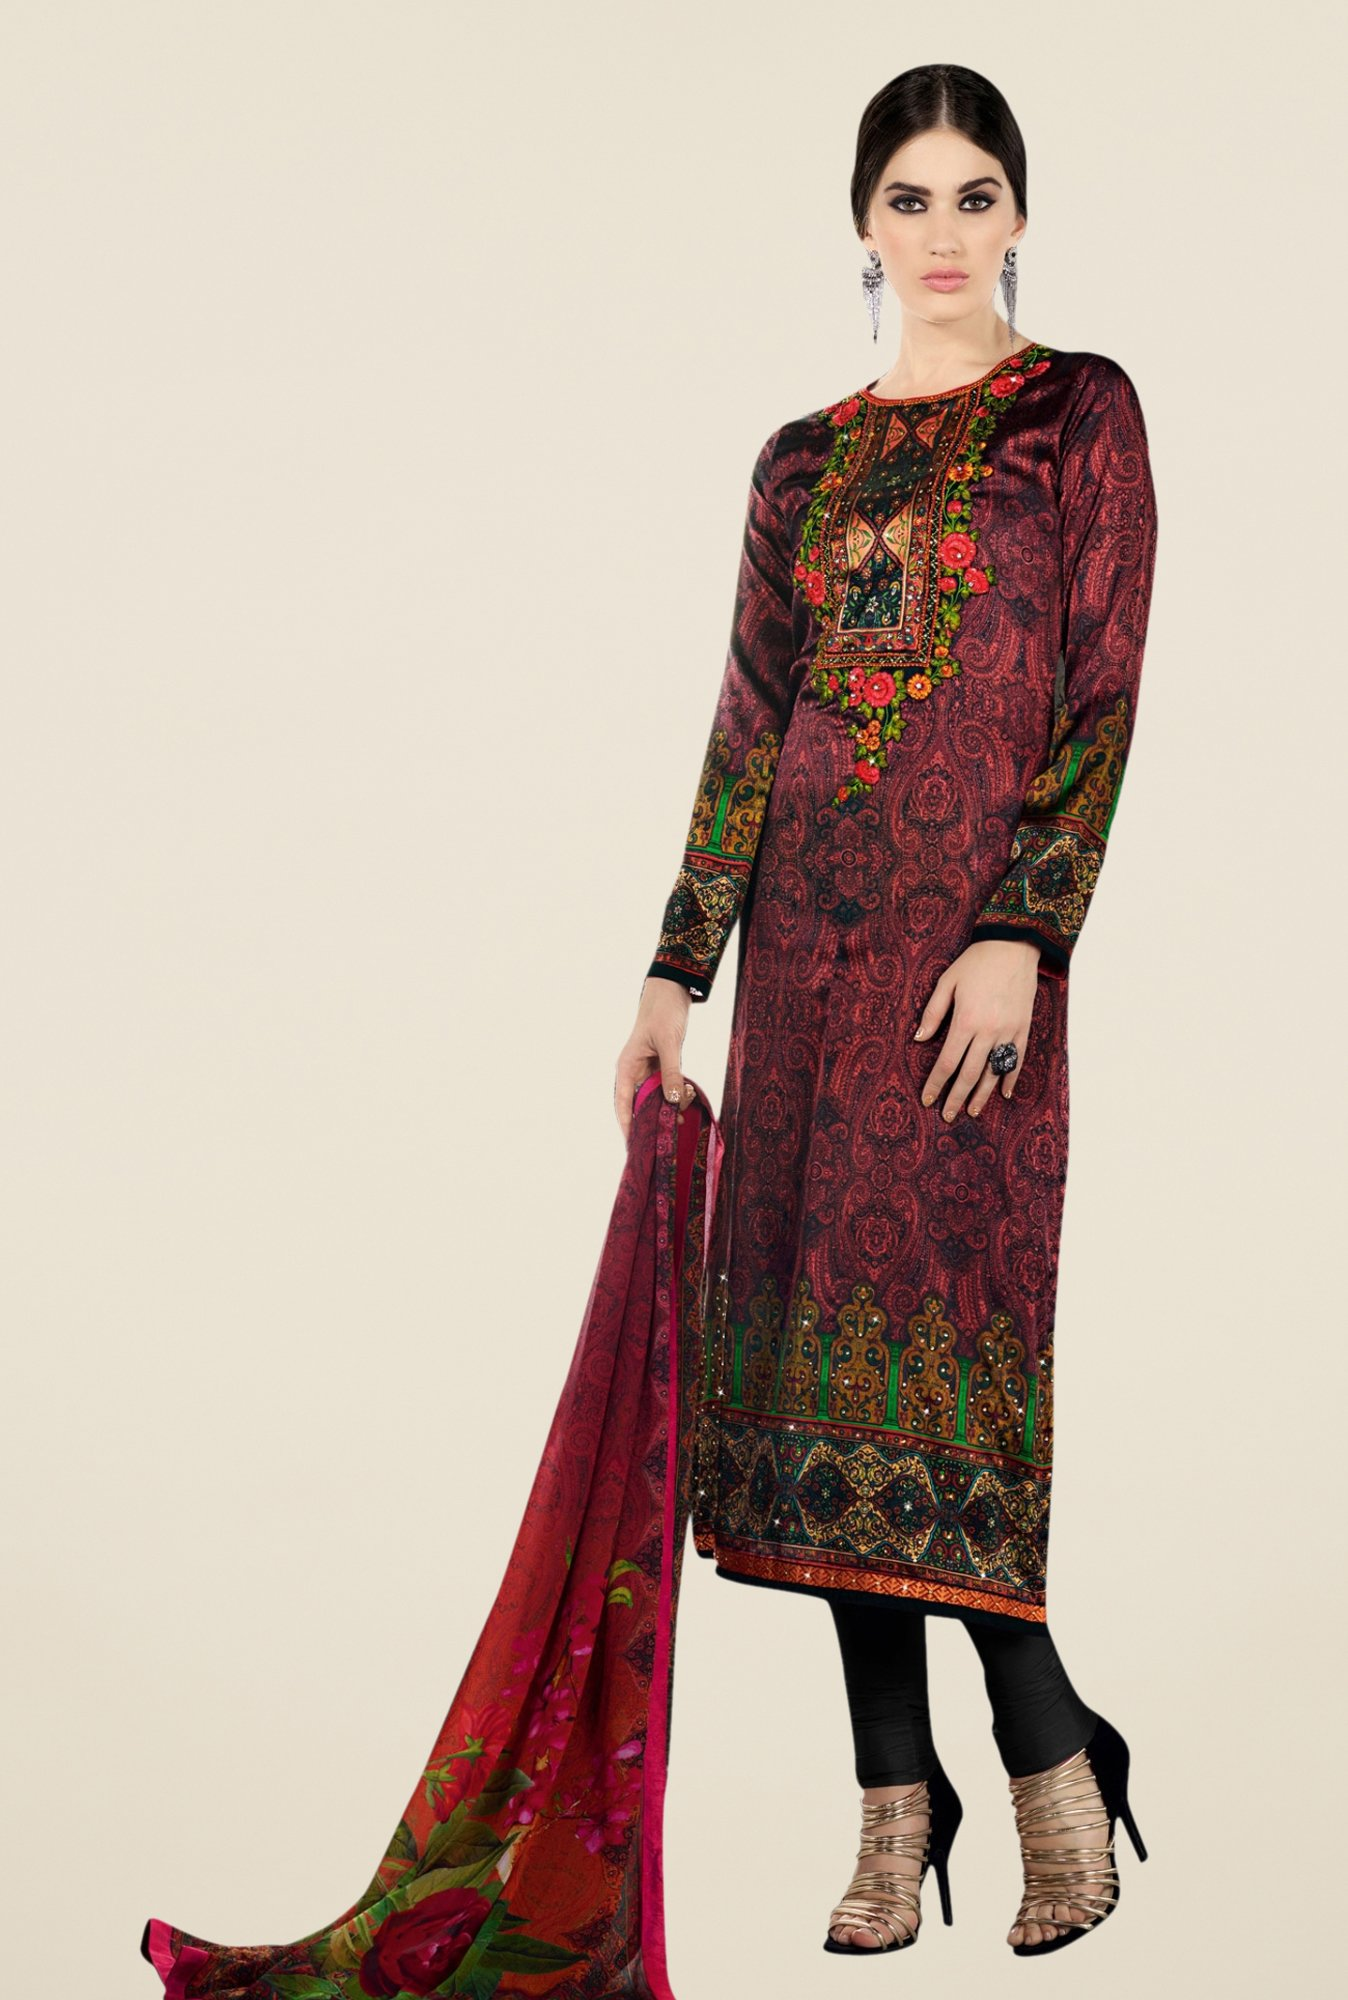 Triveni Lovely Maroon & Black Satin Crepe Dress Material